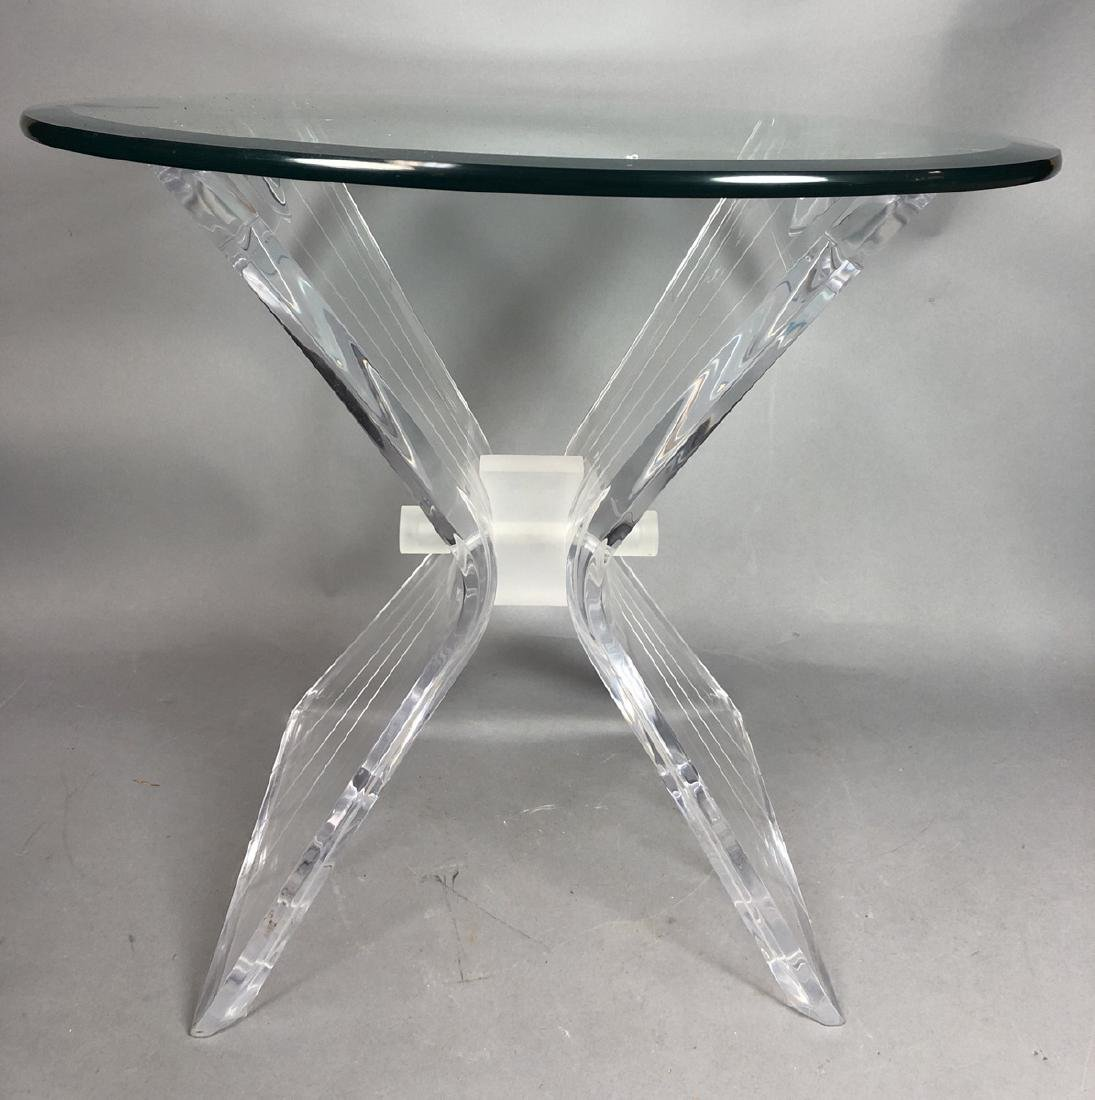 HILL Style Lucite Side Table. Beveled glass top.